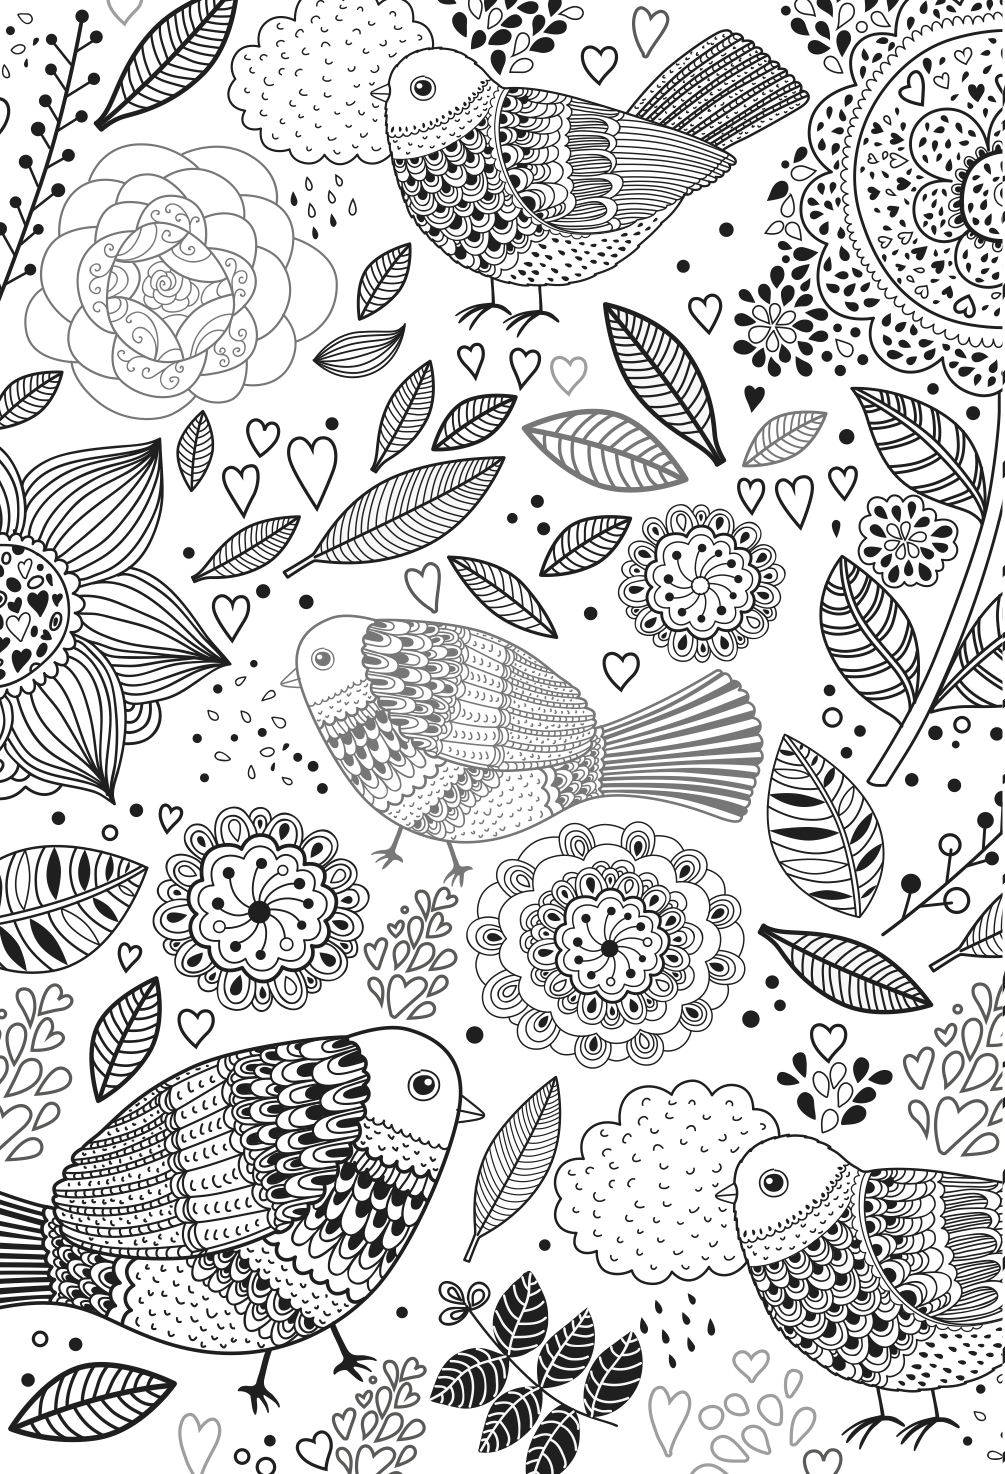 birds colouring page including mandala designs and leaves. stress relieving relaxing colouring for grown ups